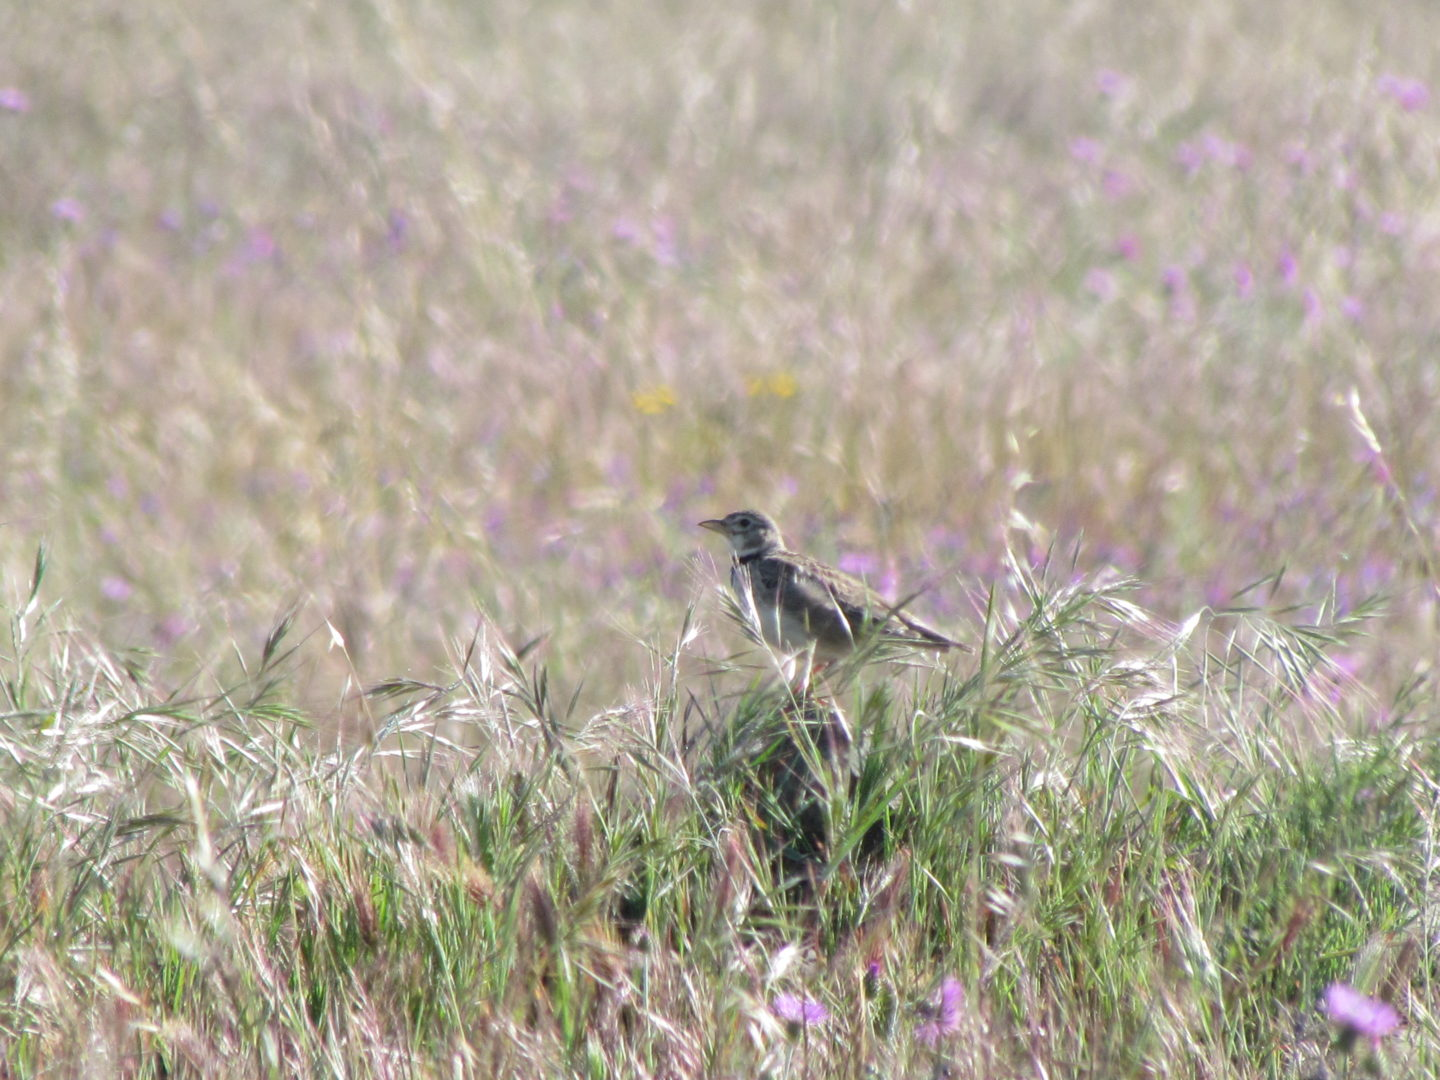 Calandra Lark sitting on grass